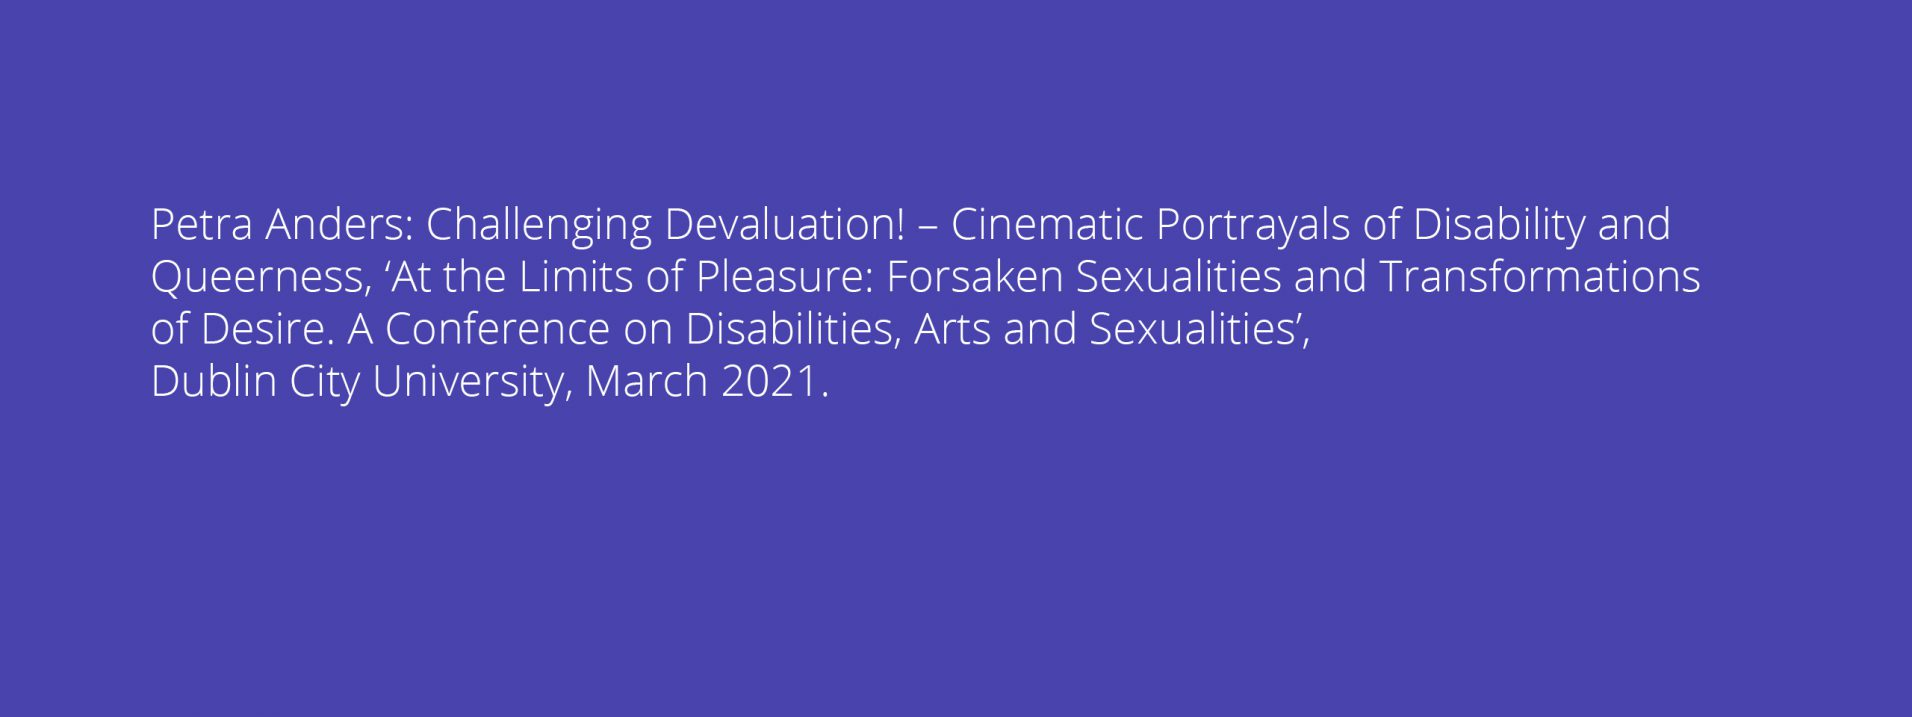 Petra Anders: Challenging Devaluation! – Cinematic Portrayals of Disability and Queerness, 'At the Limits of Pleasure: Forsaken Sexualities and Transformations of Desire. A Conference on Disabilities, Arts and Sexualities', Dublin City University, March 2021.